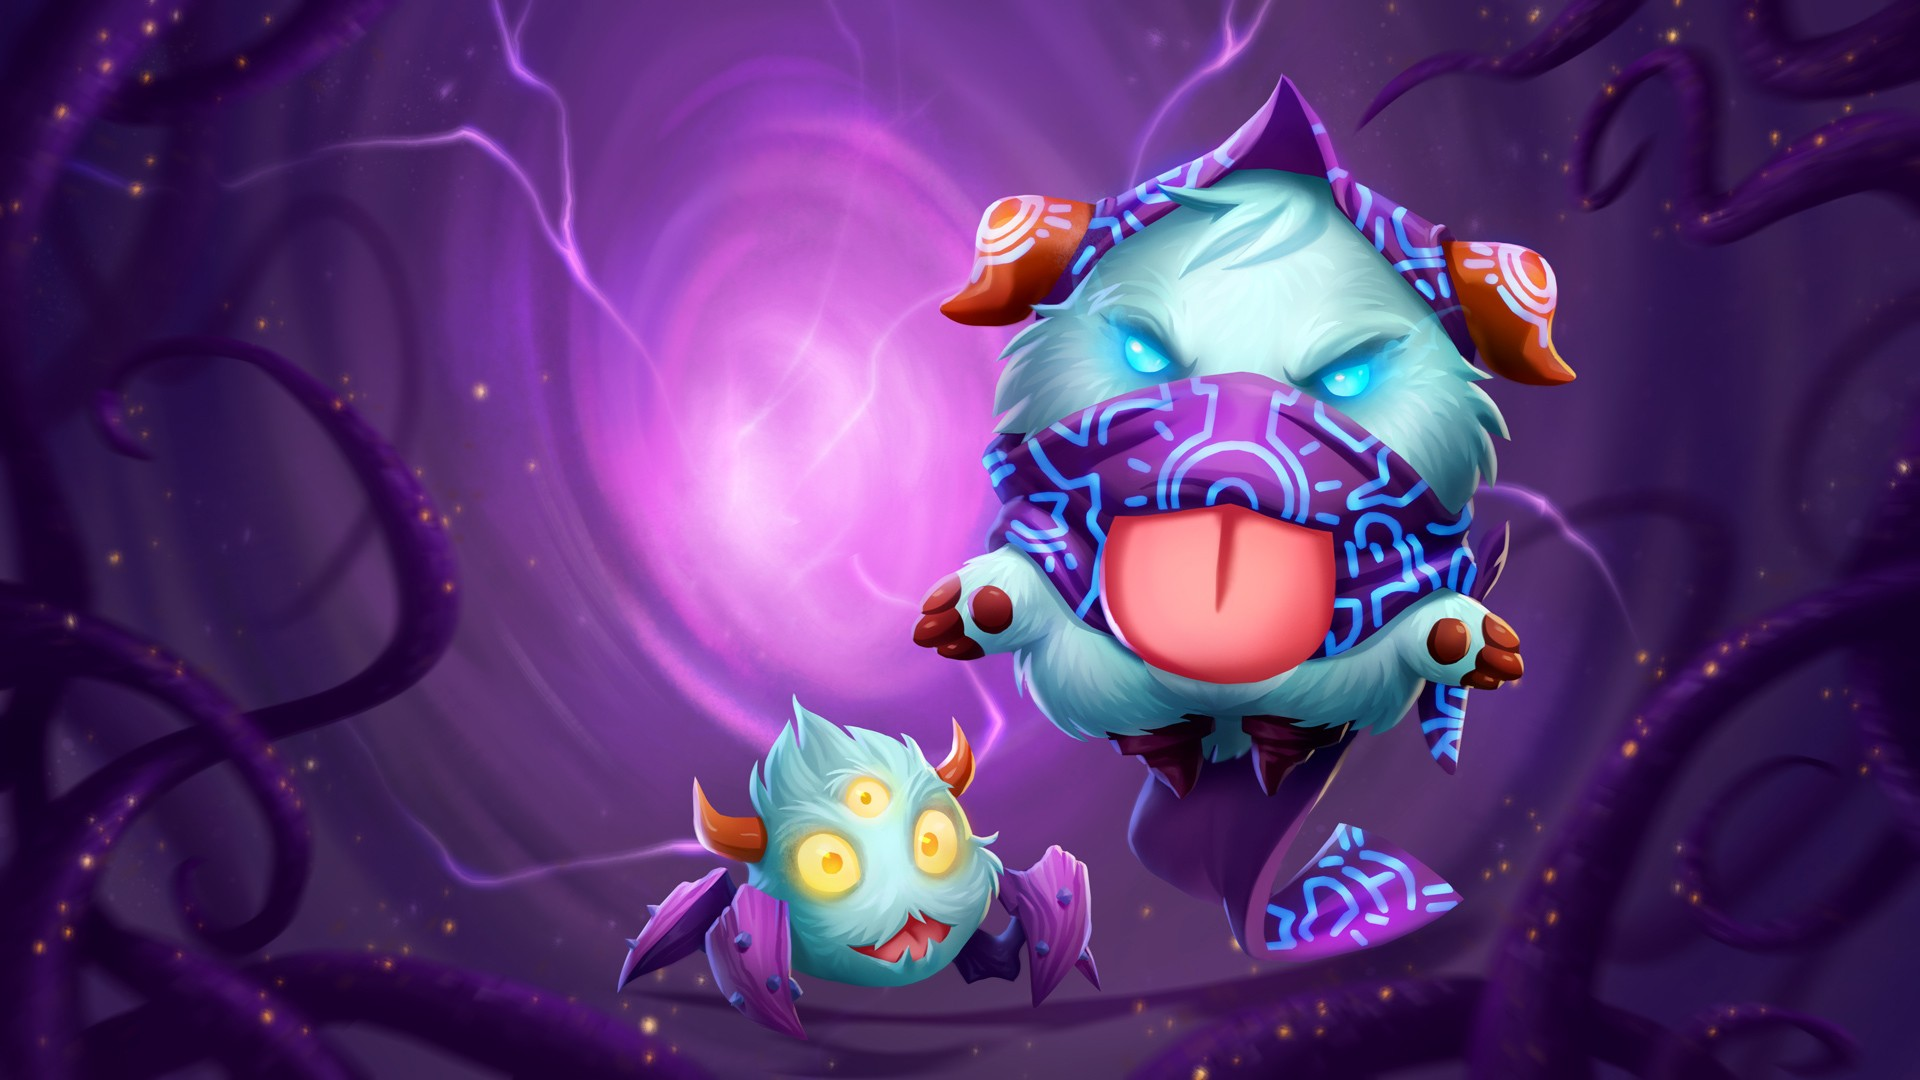 Malzahar Poro wallpaper